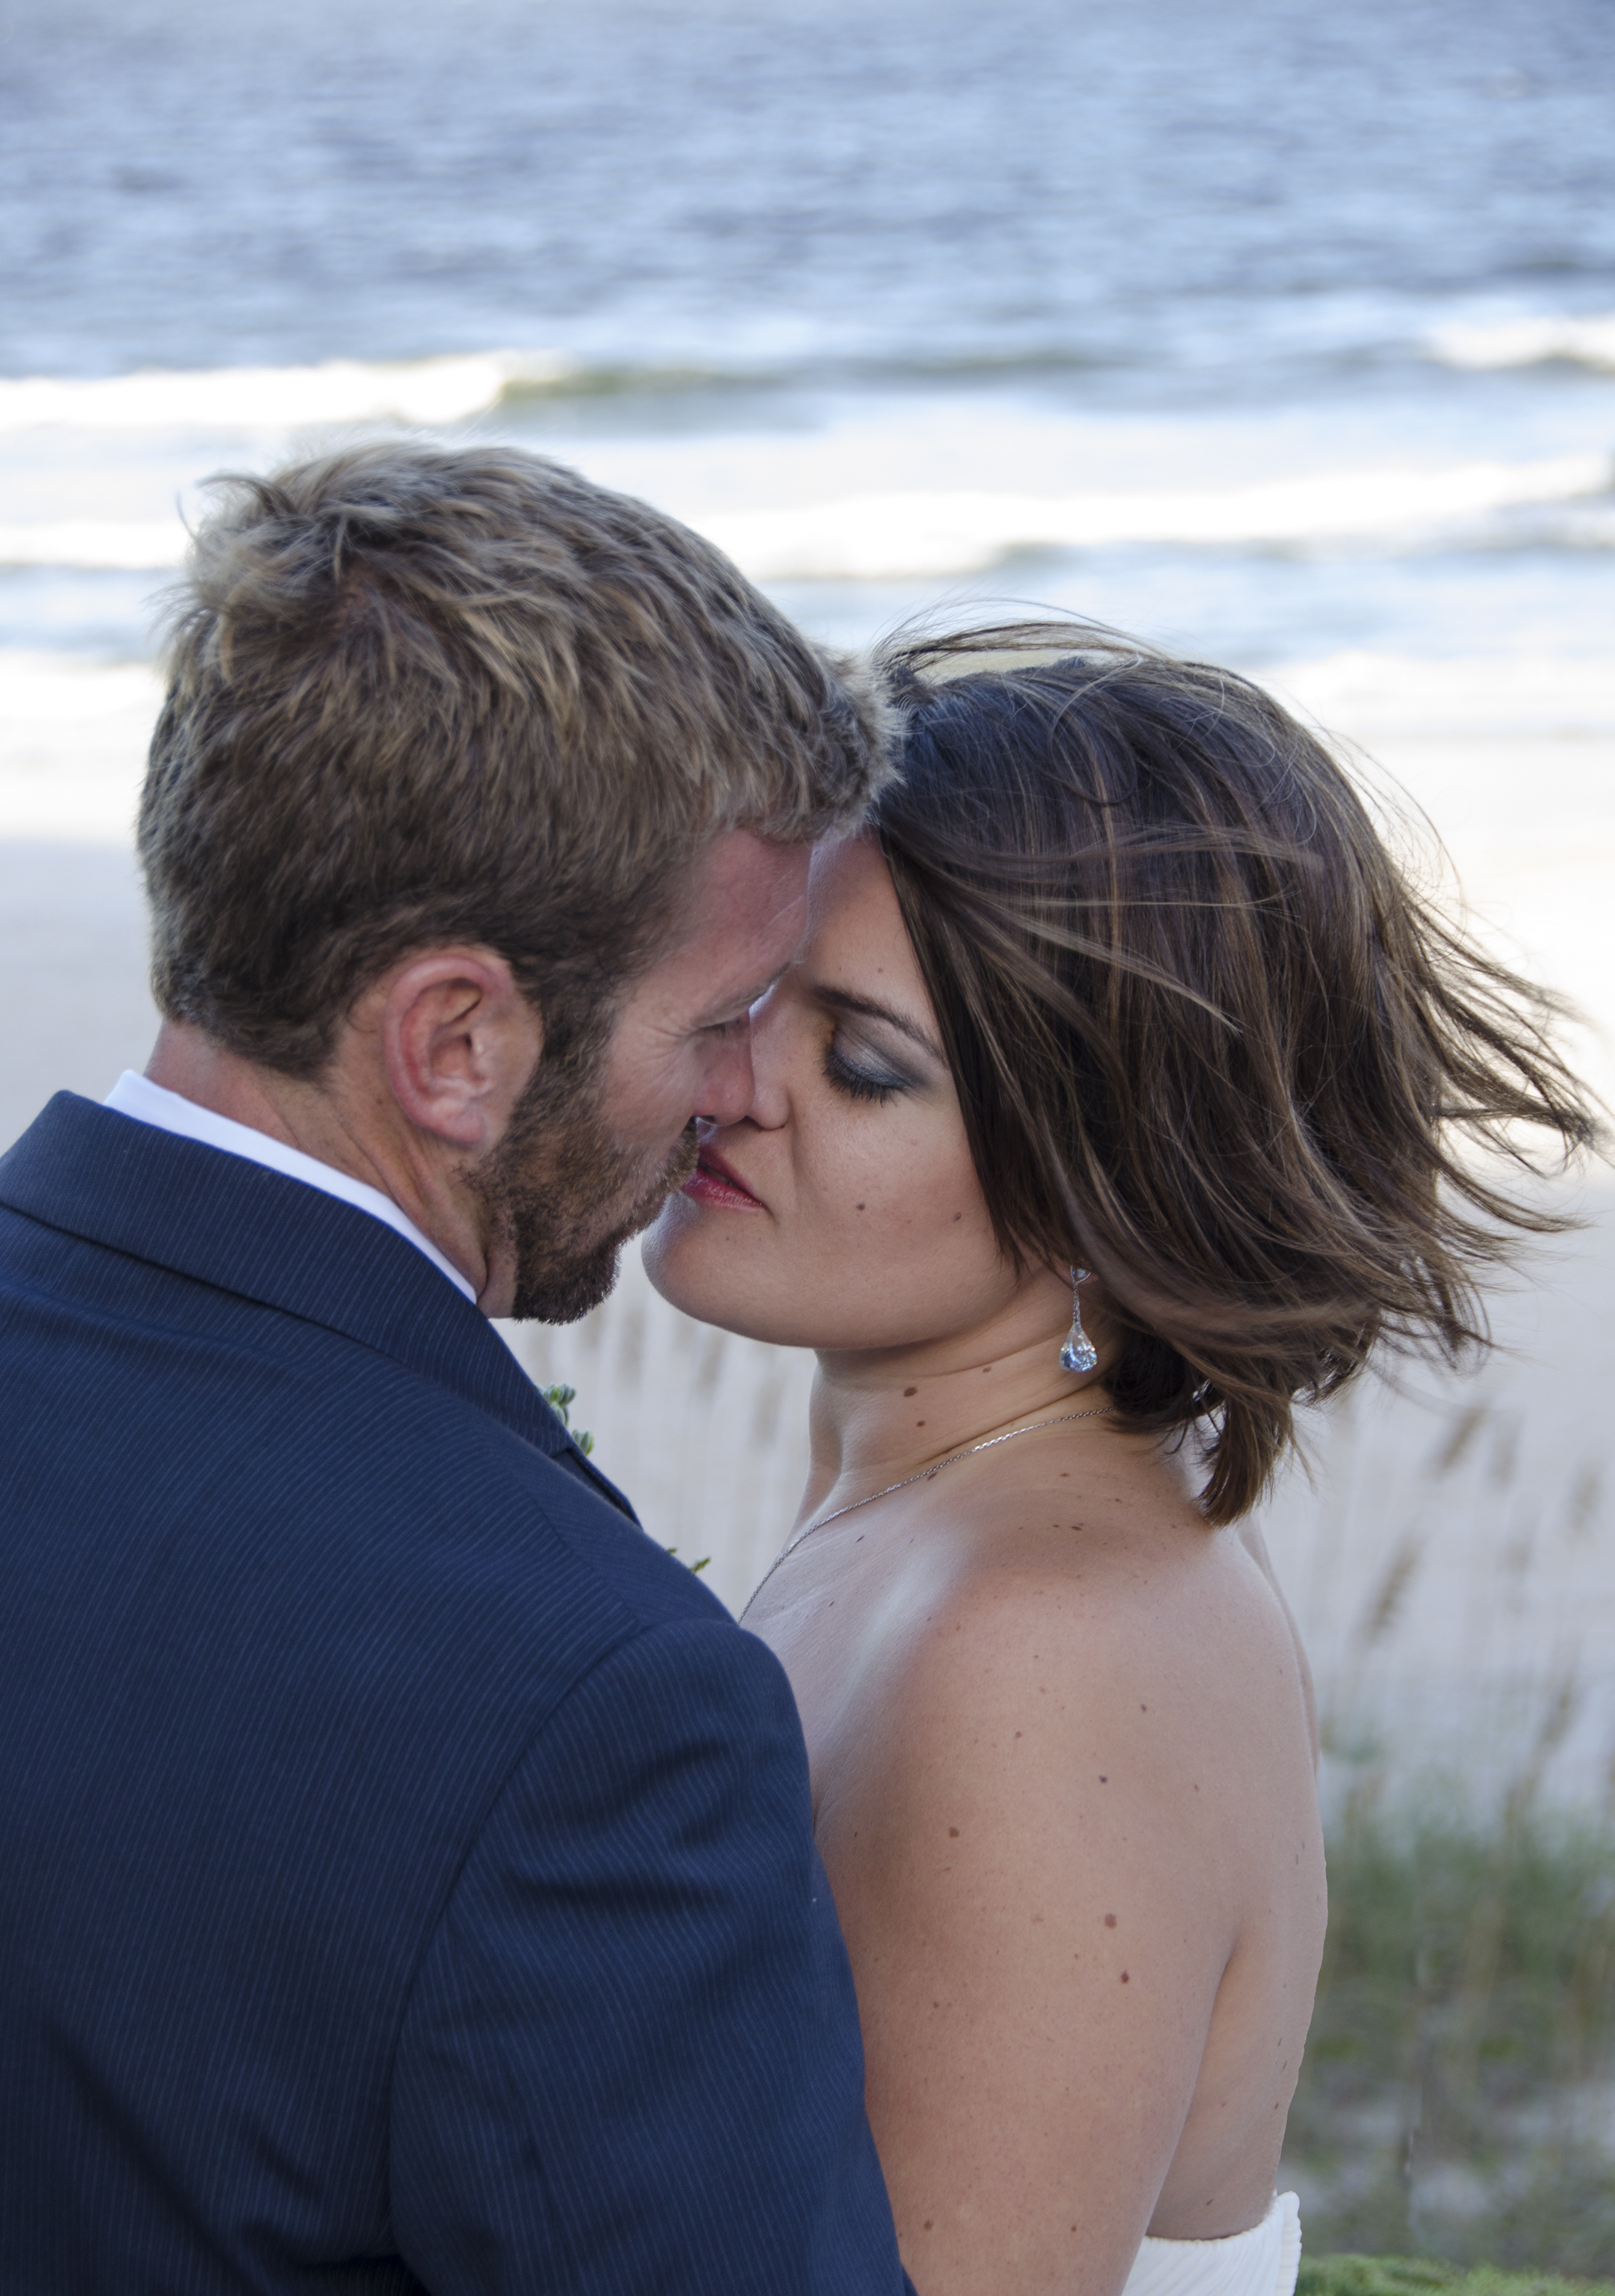 First kiss after the wedding ceremony, a tender moment by the beach